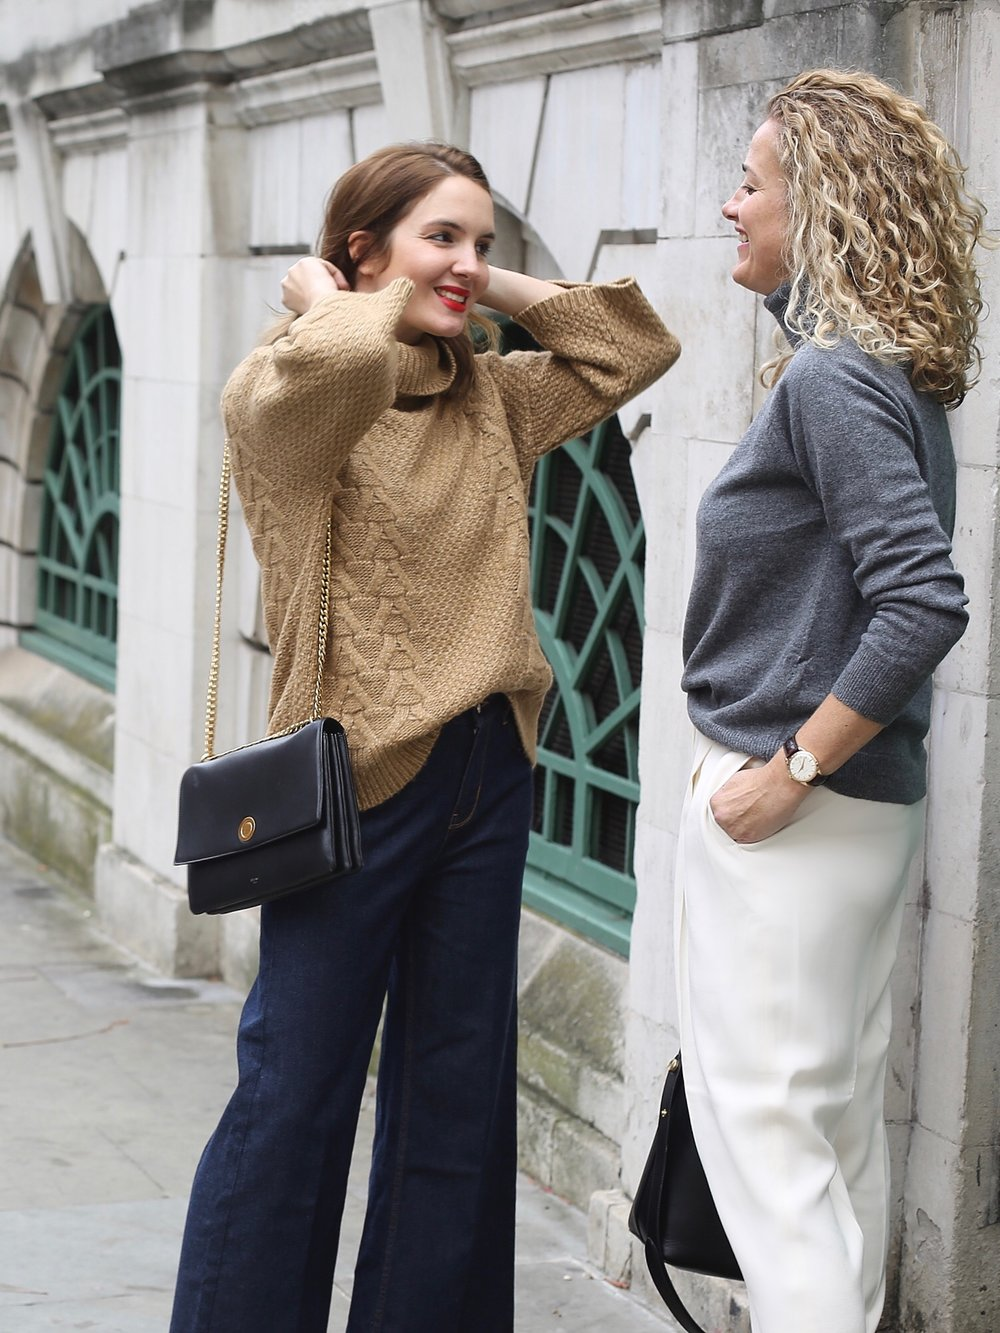 THE GROWN UP EDIT - Massimo Dutti bloggers